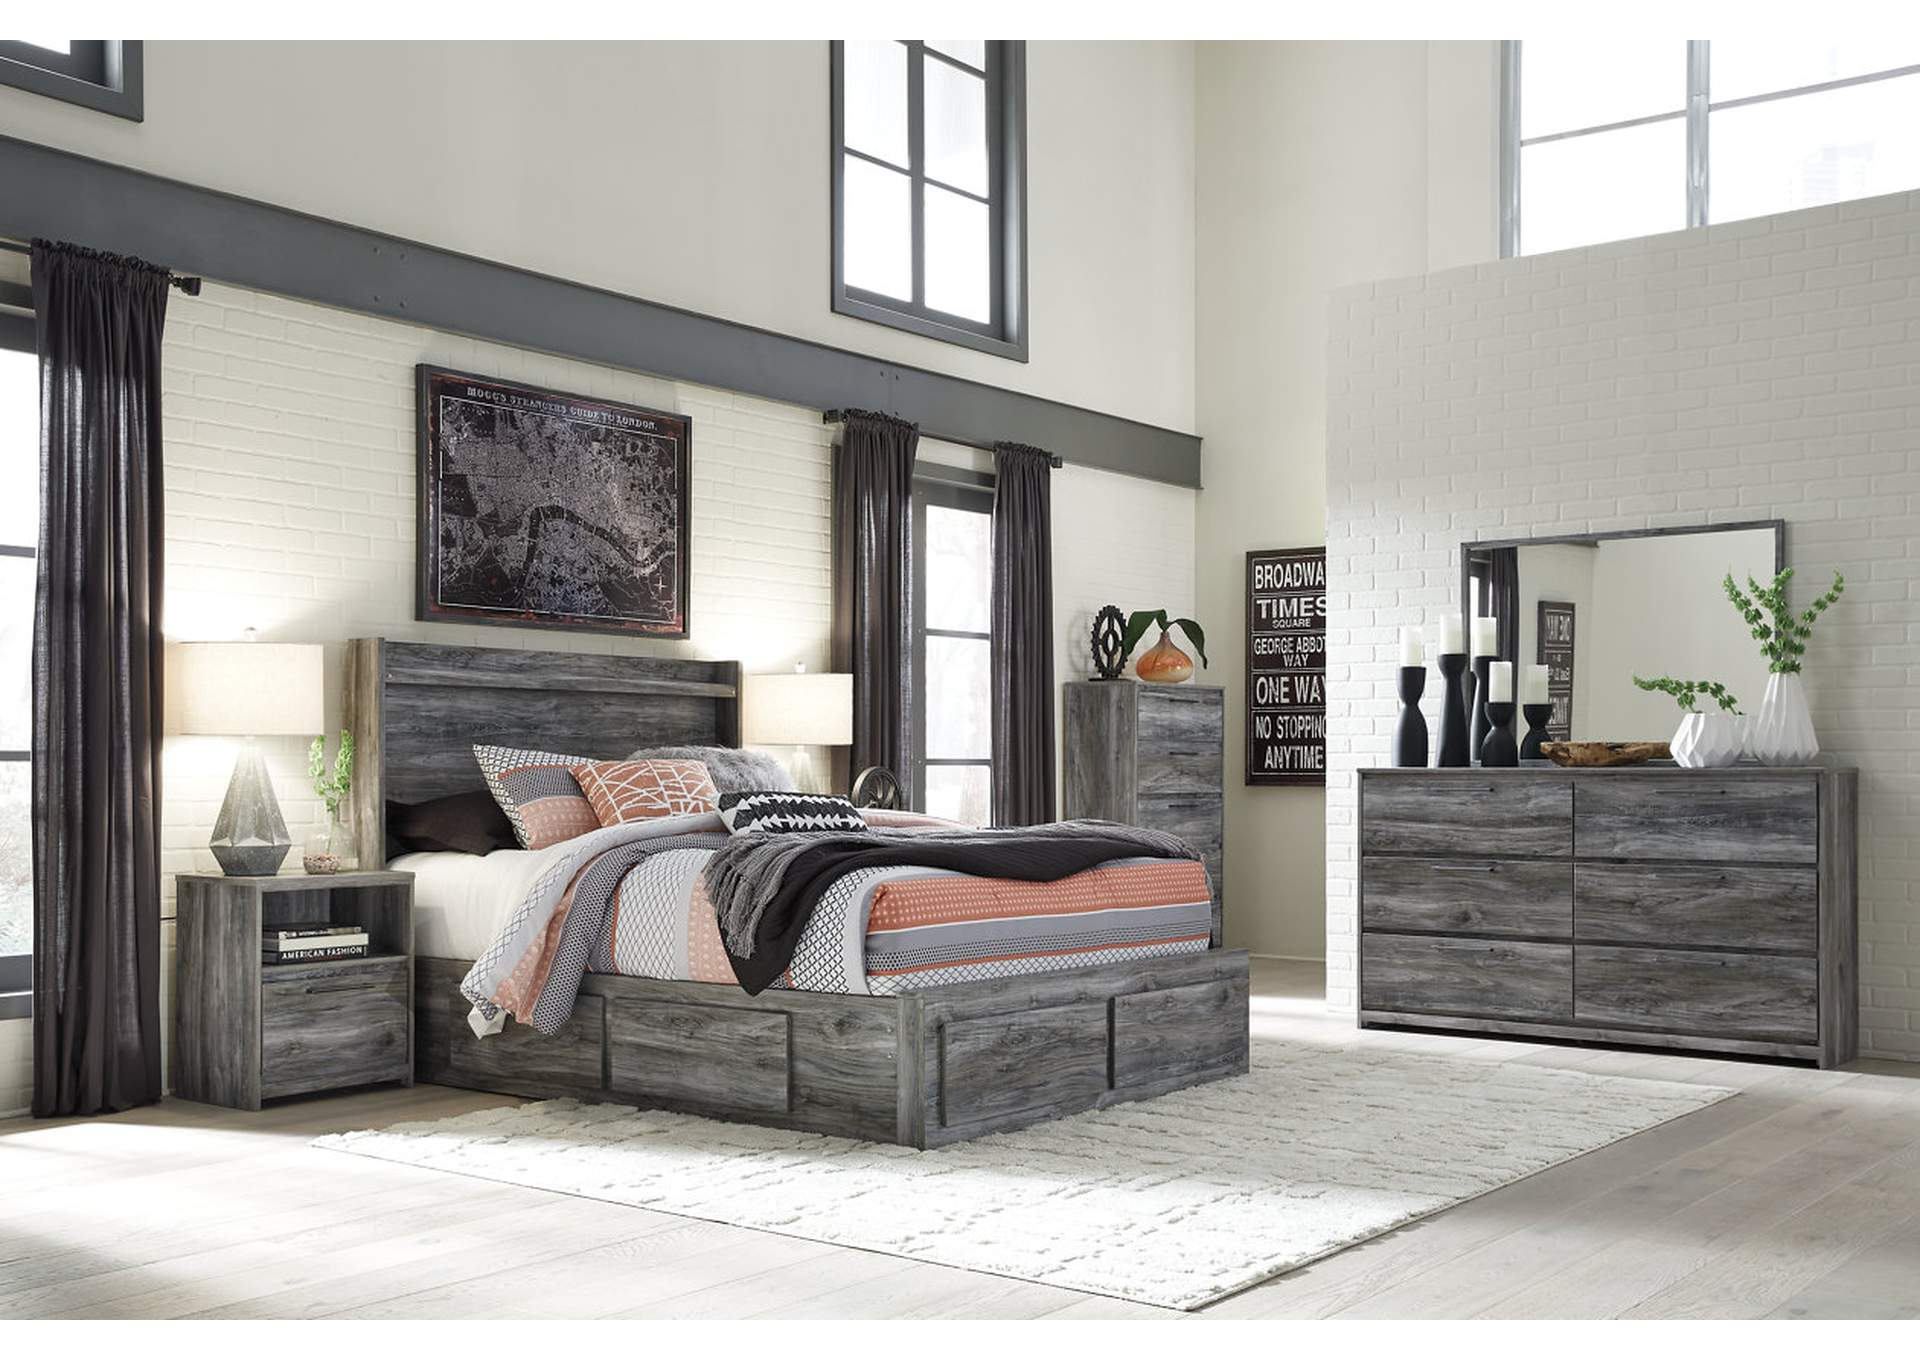 Baystorm Gray Queen Storage Bed w/Dresser and Mirror,Signature Design By Ashley